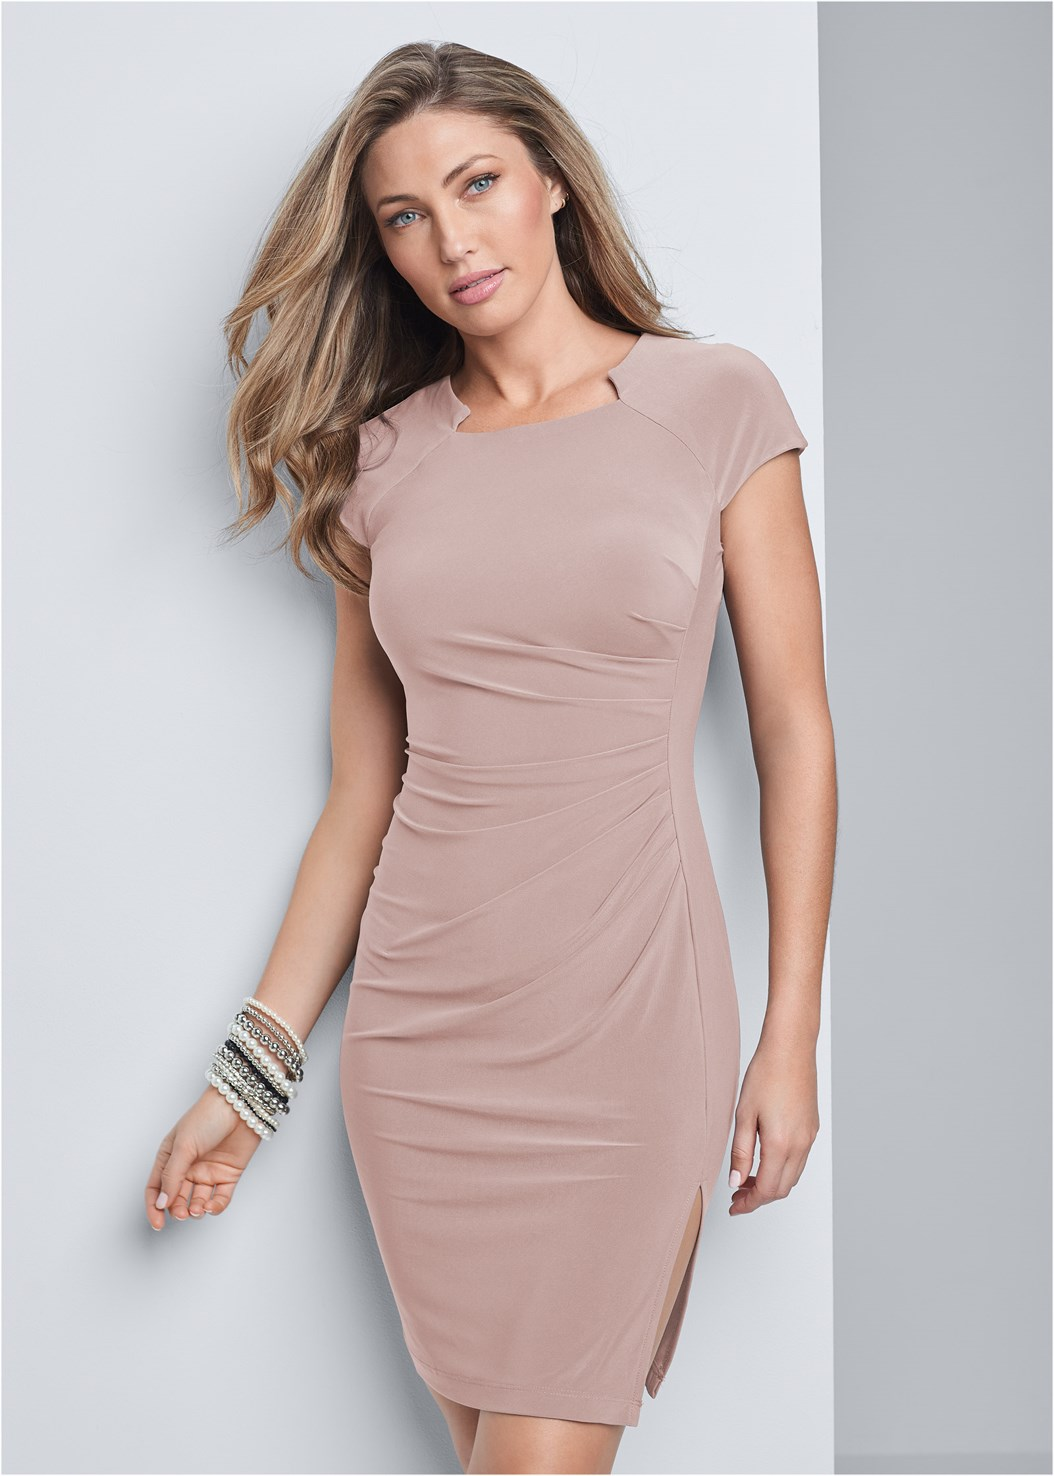 Ruched Dress,Naked T-Shirt Bra,Ankle Strap Heels